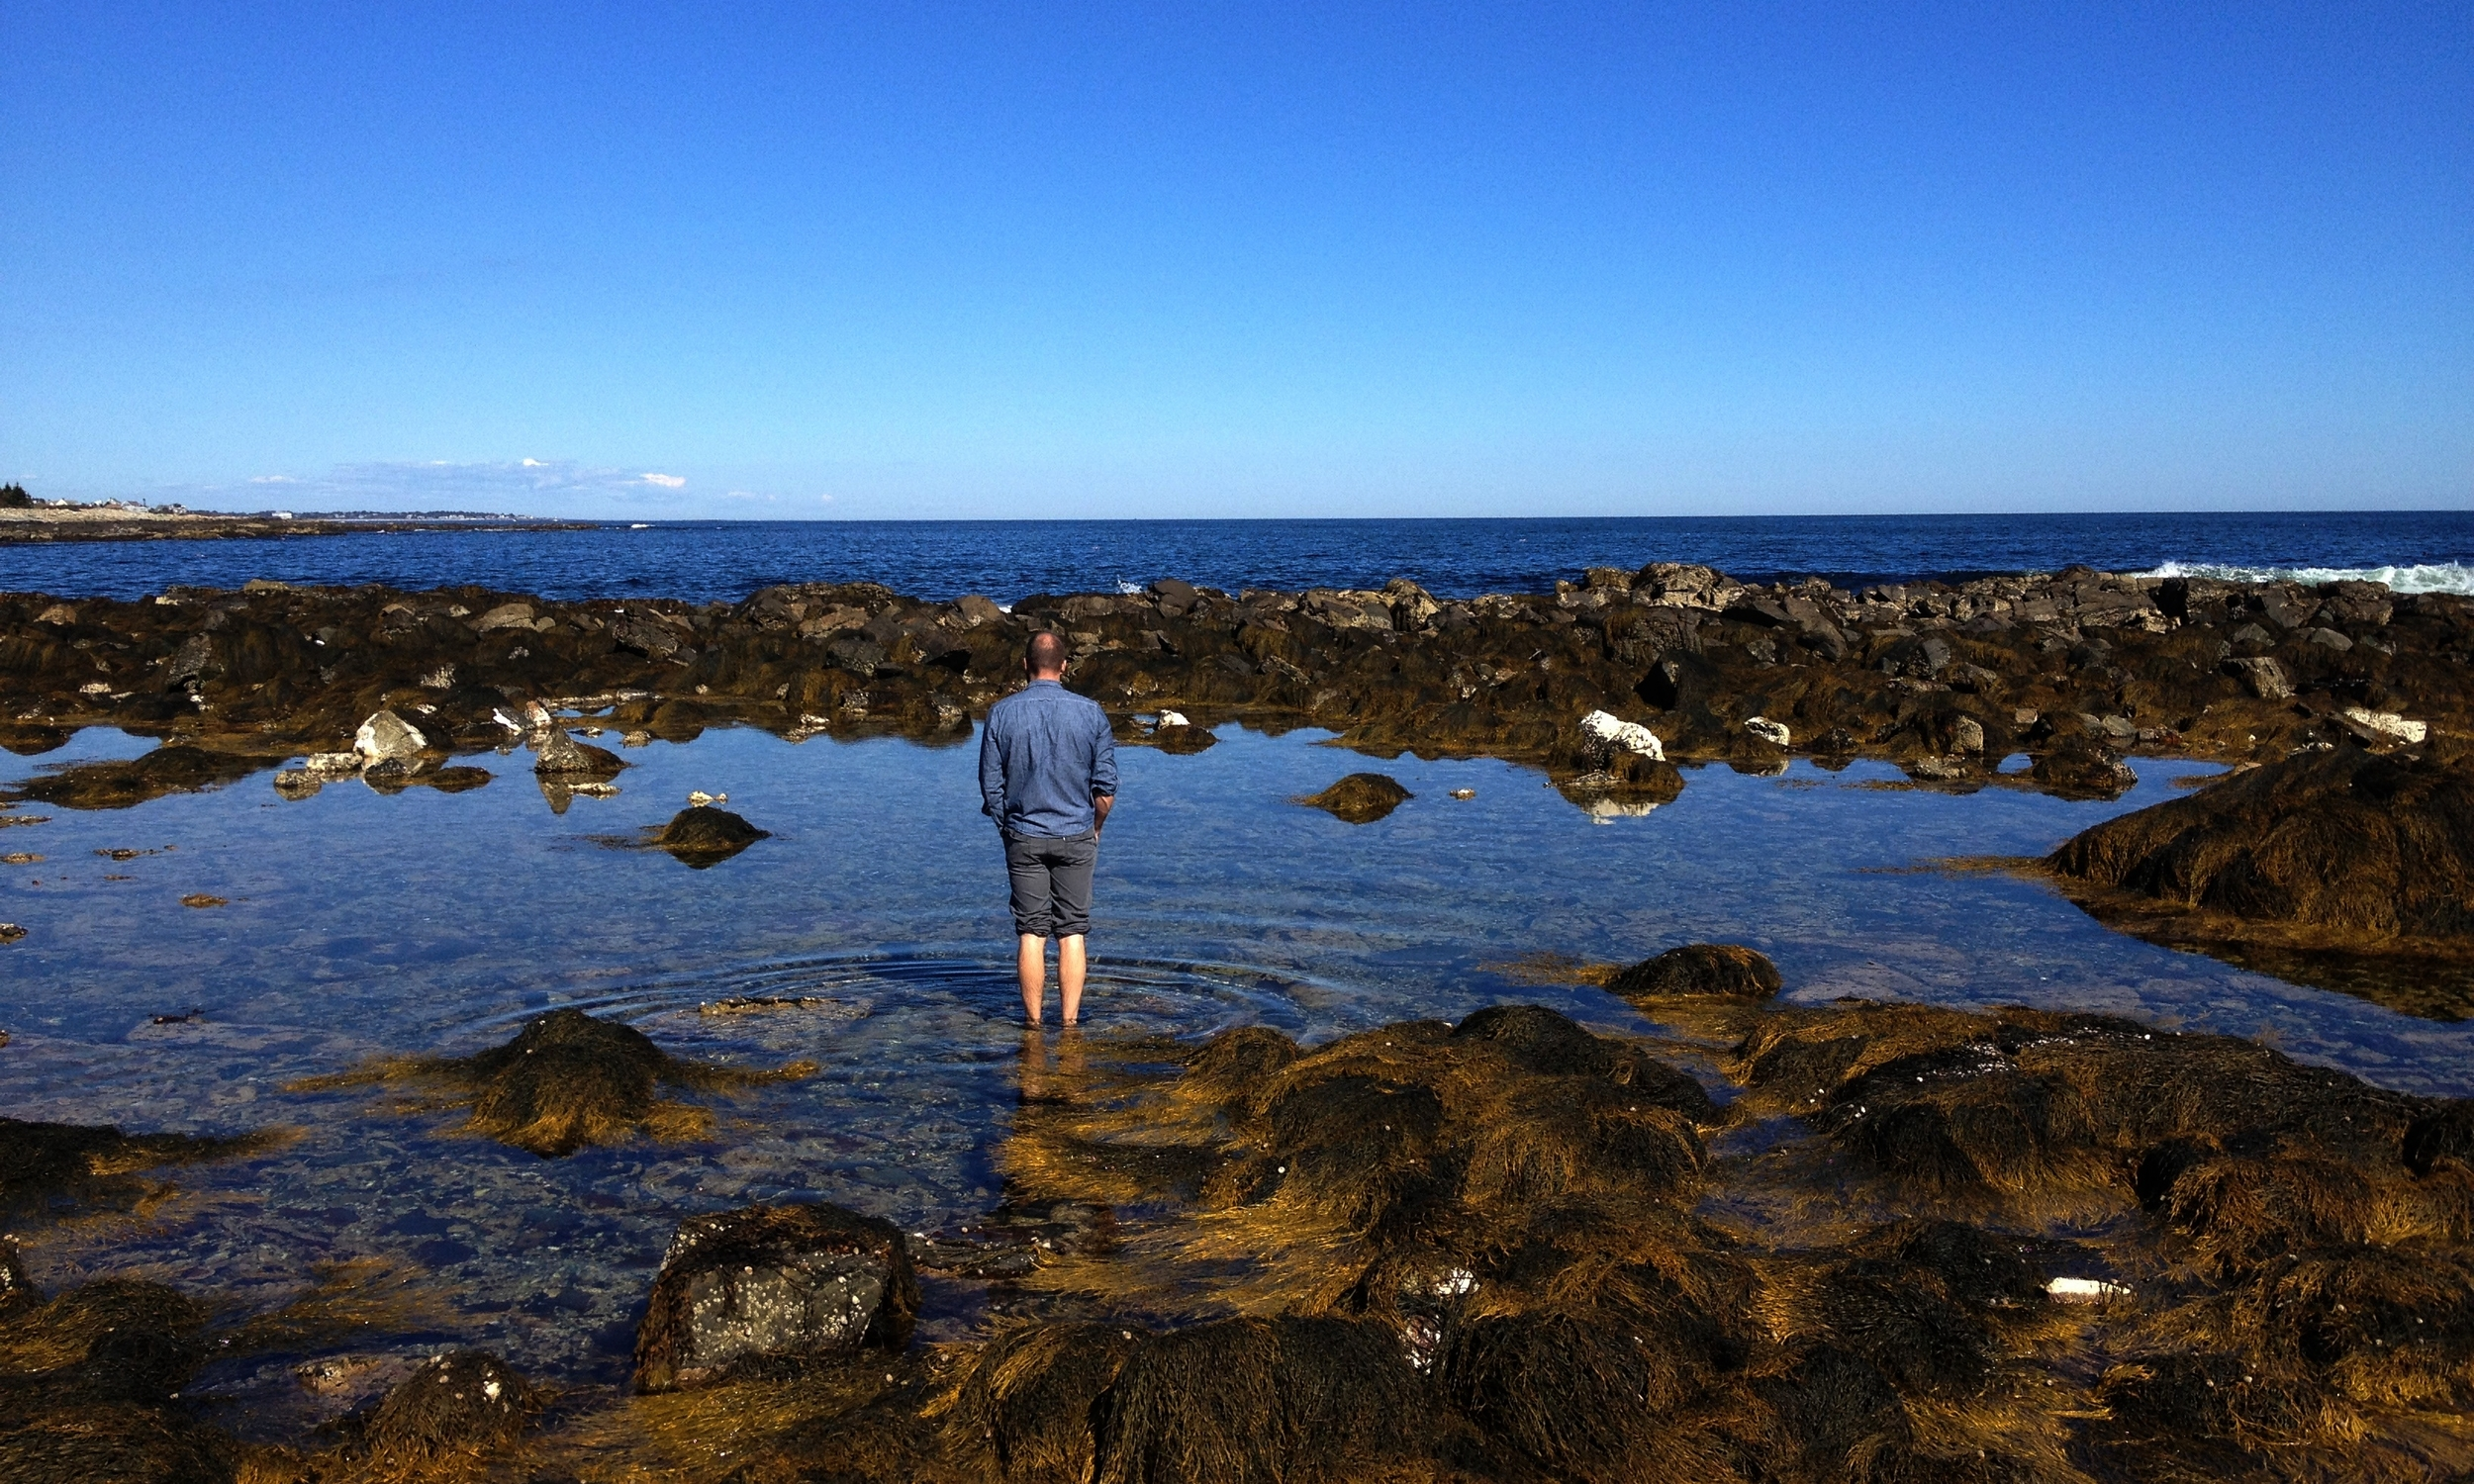 Exploring the tidal pools in Maine.